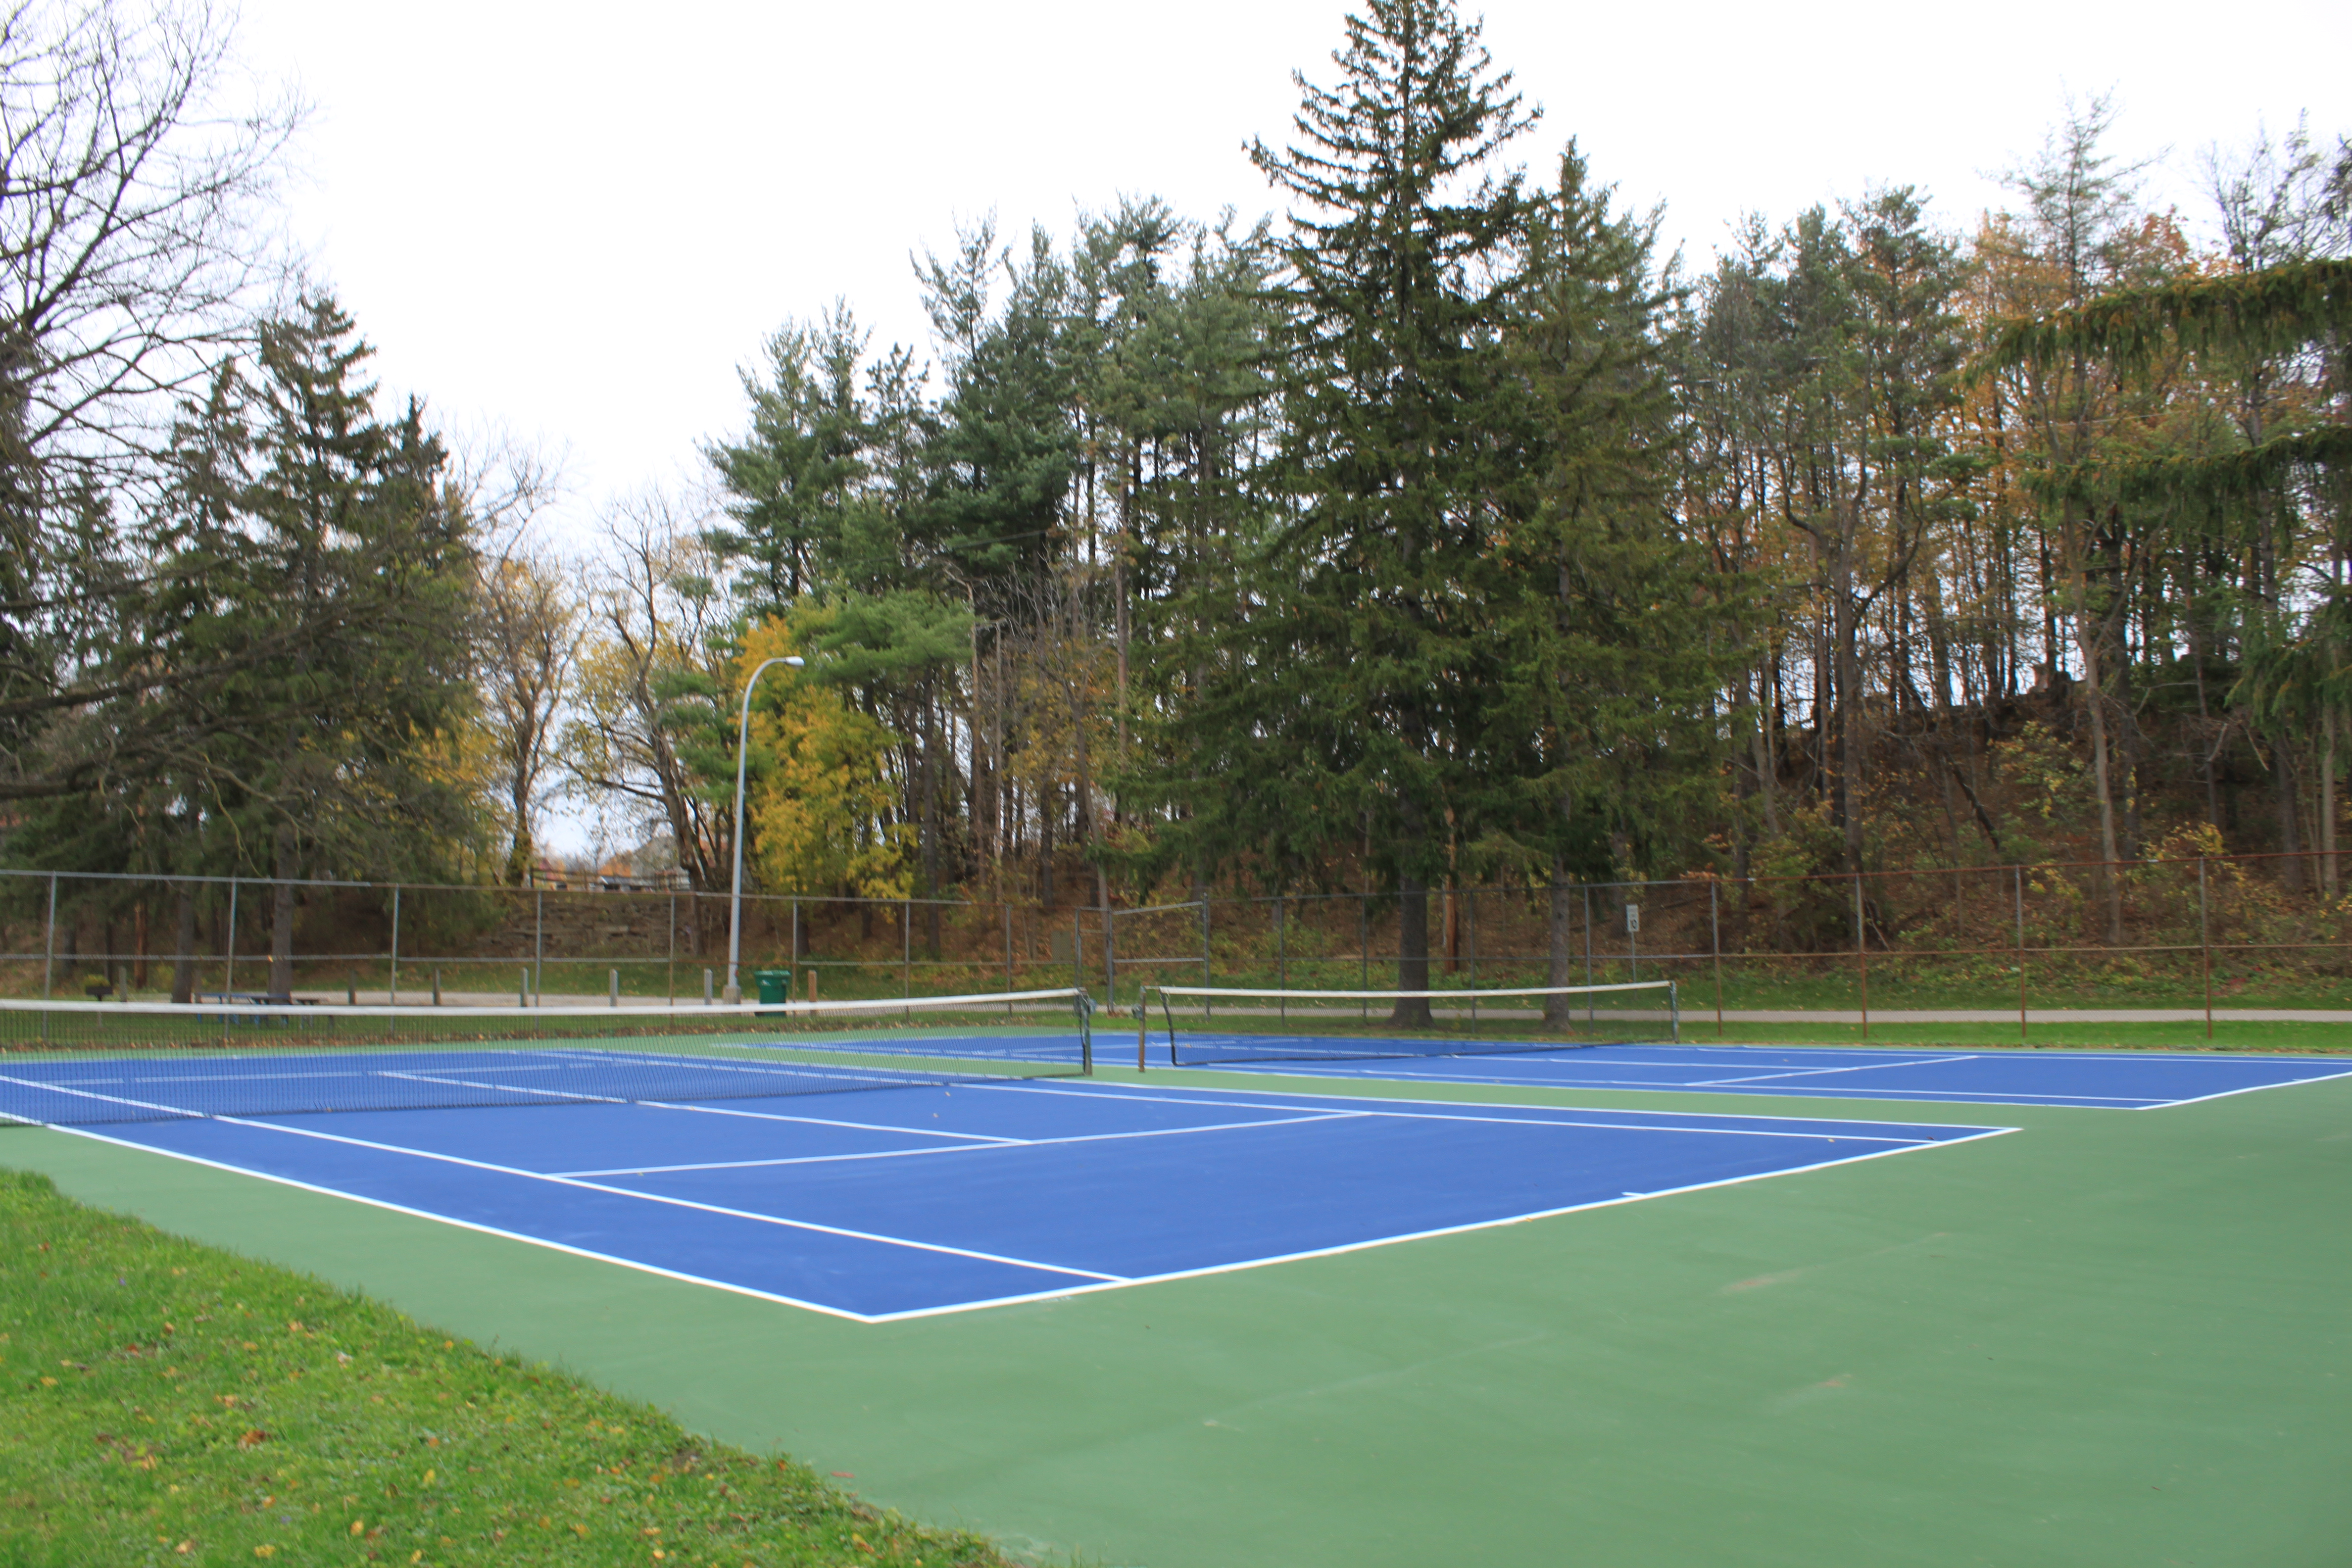 Ficheiro Hardcourt Tennis Court Curtiss Park Saline Michigan Jpg Wikipedia A Enciclopedia Livre